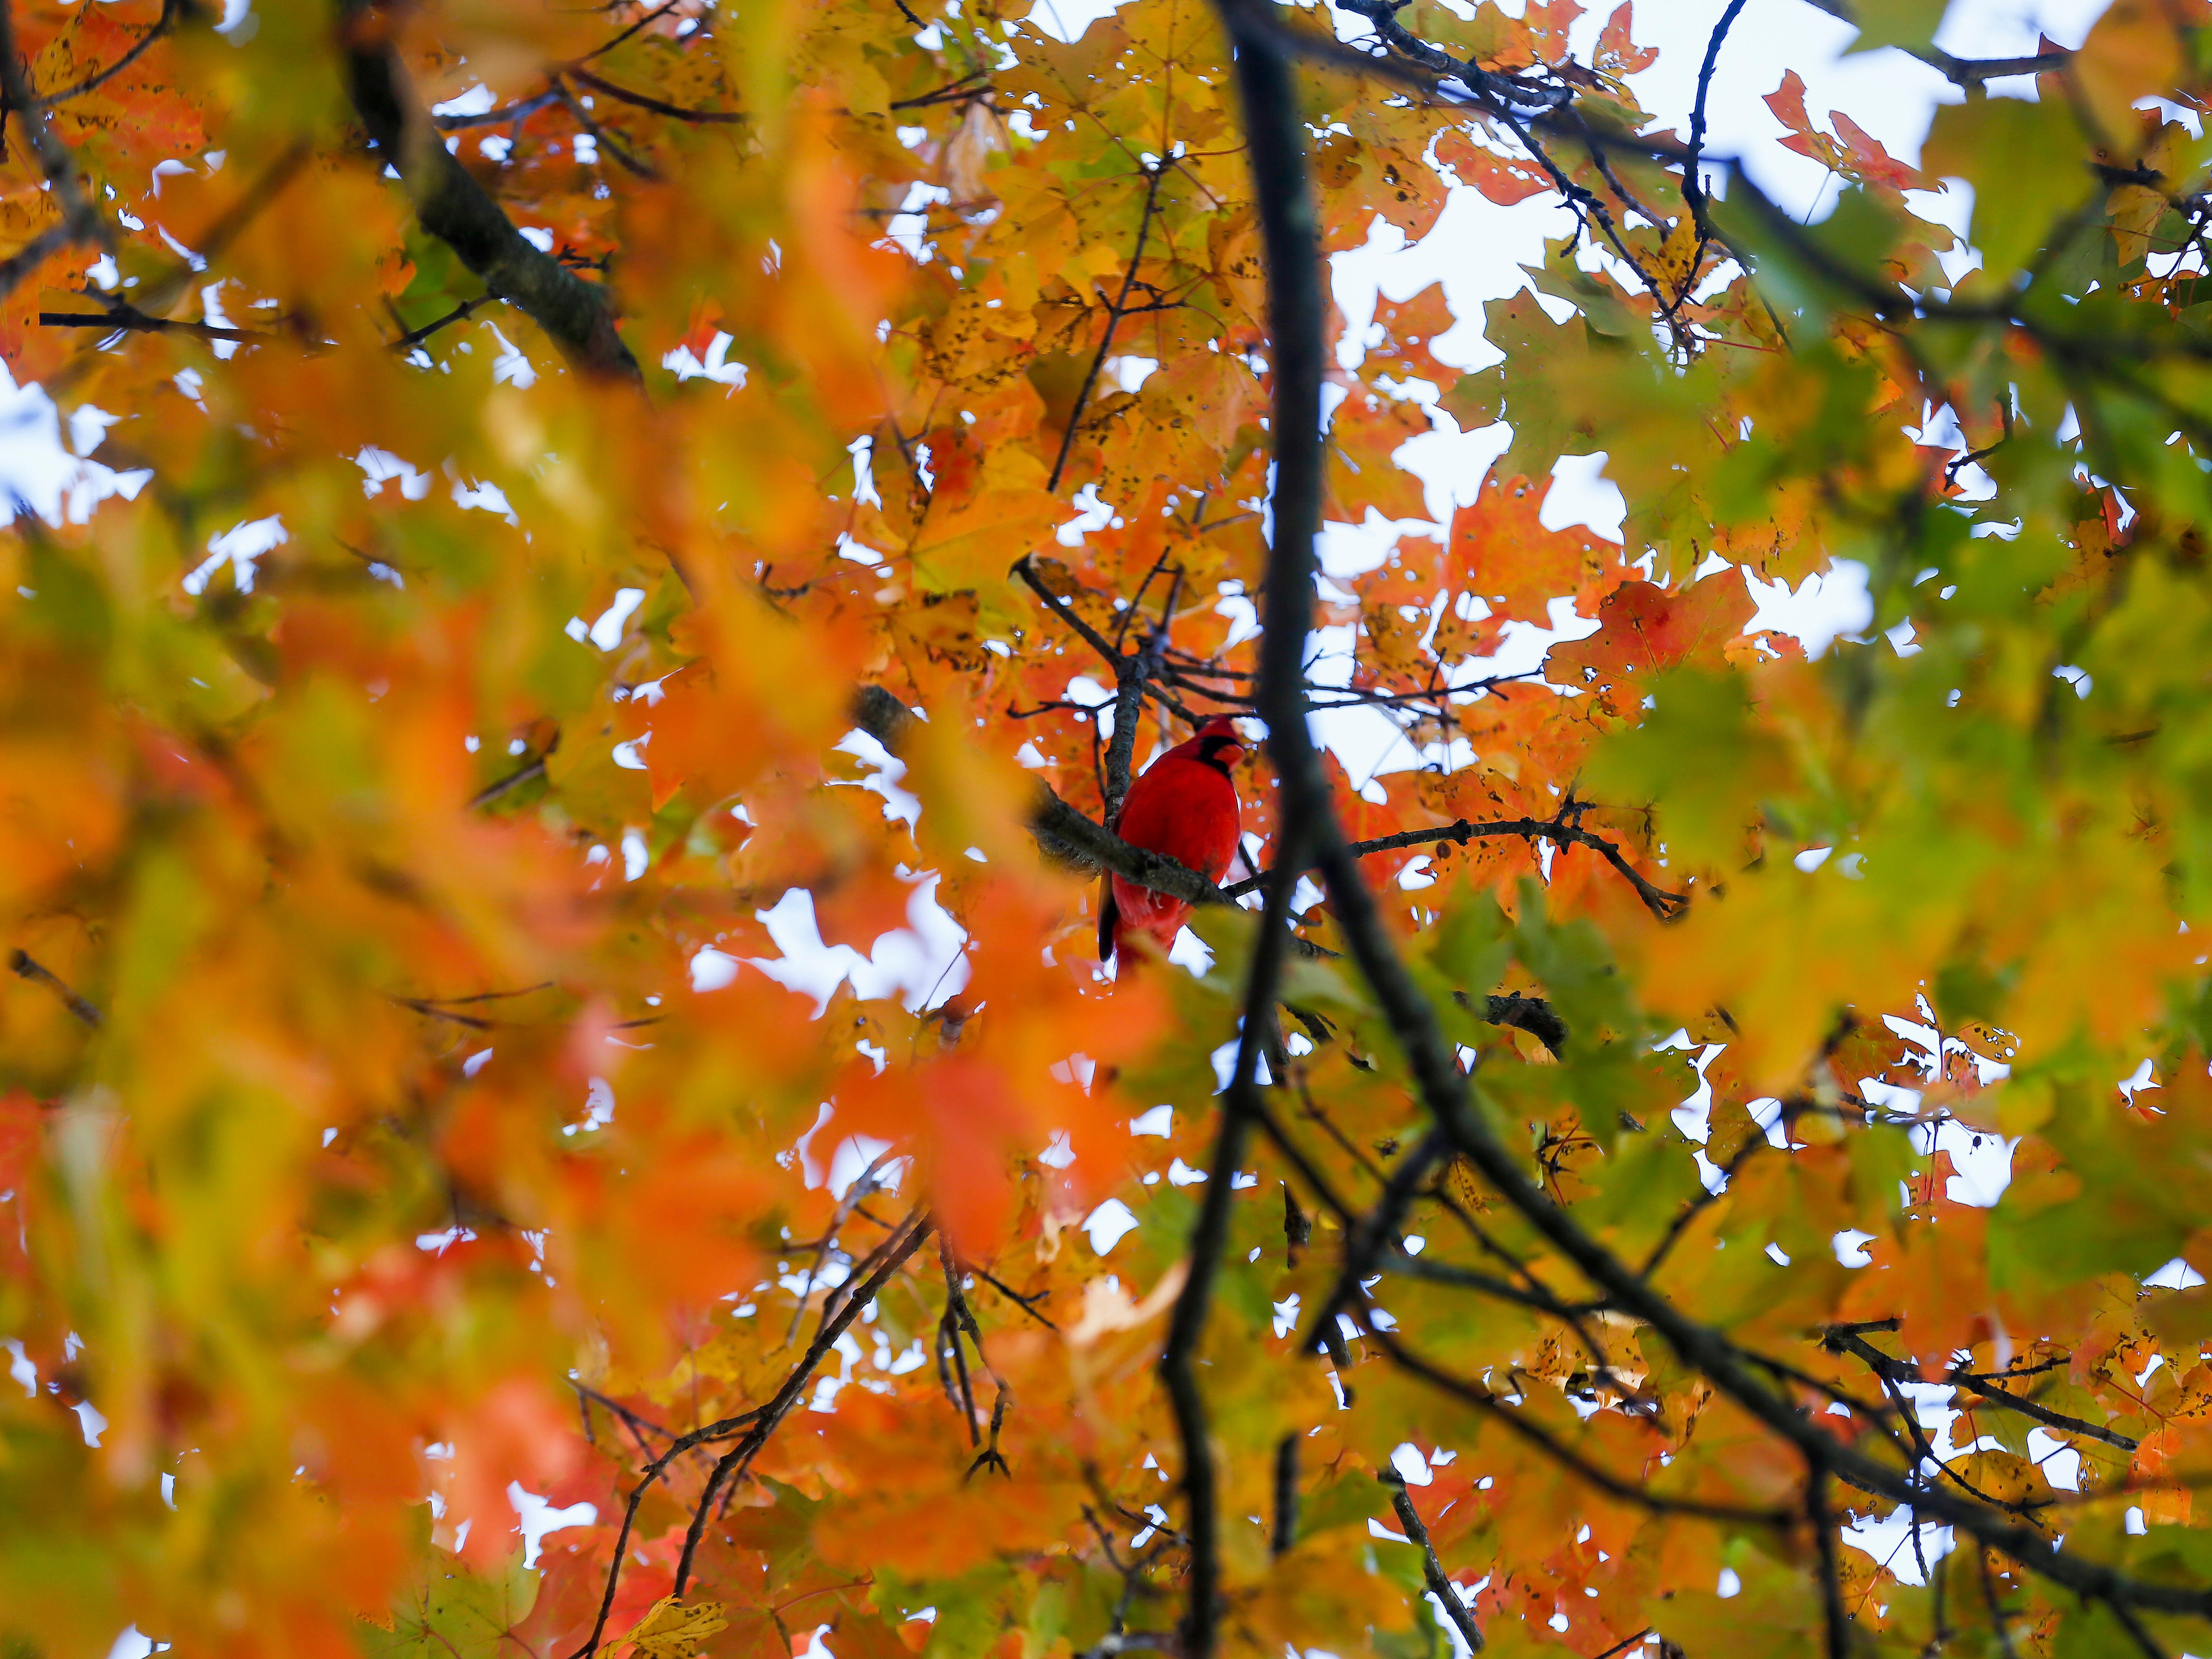 A cardinal perches on a limb amongst the fall colors at Maple Park Cemetery on Monday, Oct. 29, 2018.